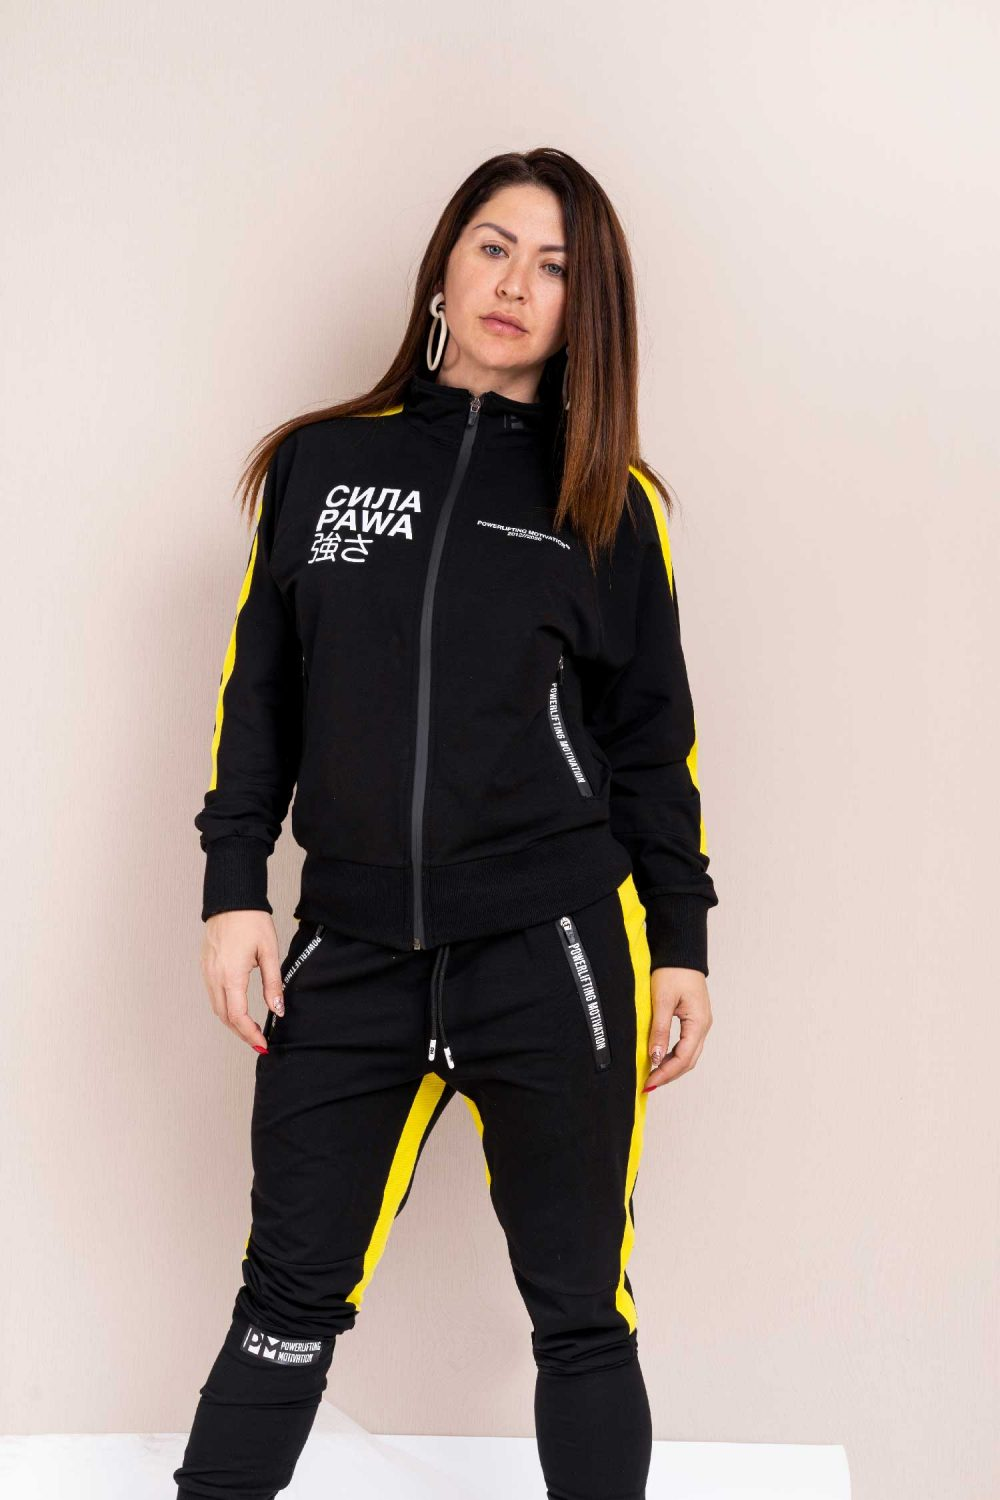 pm-black-yellow-full-body-jana